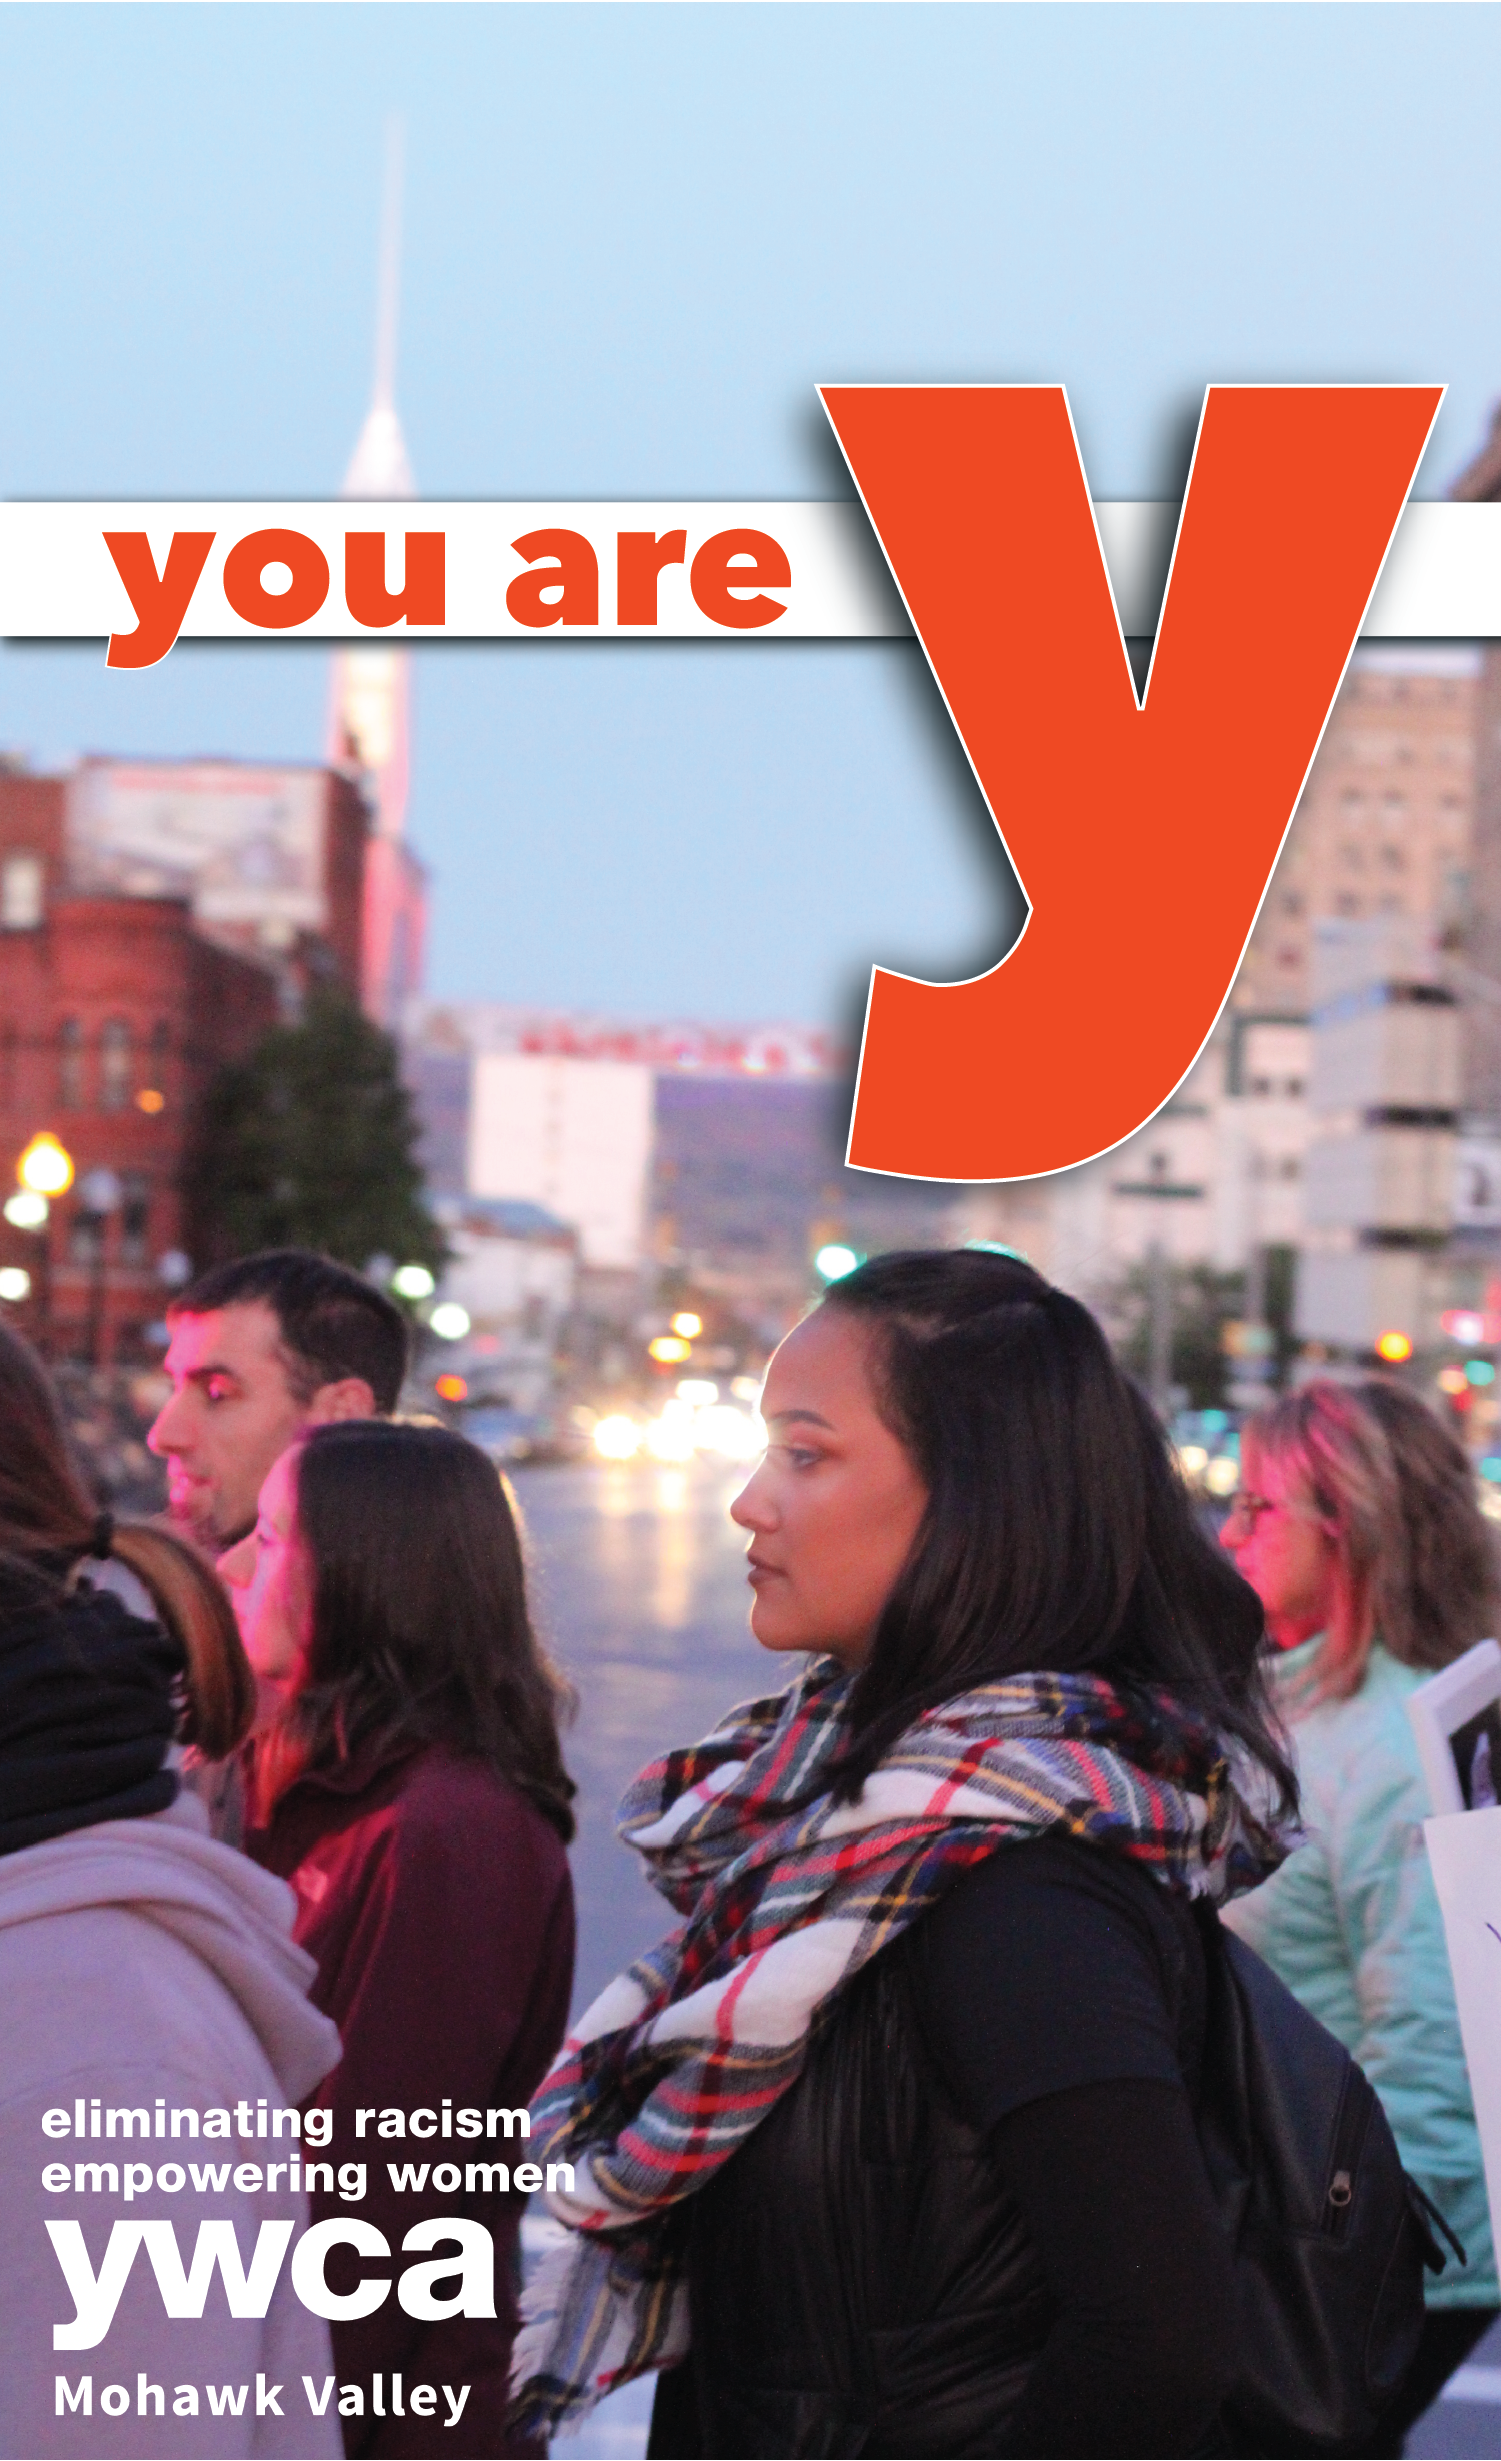 you are y: marchers on Genesee St., Utica